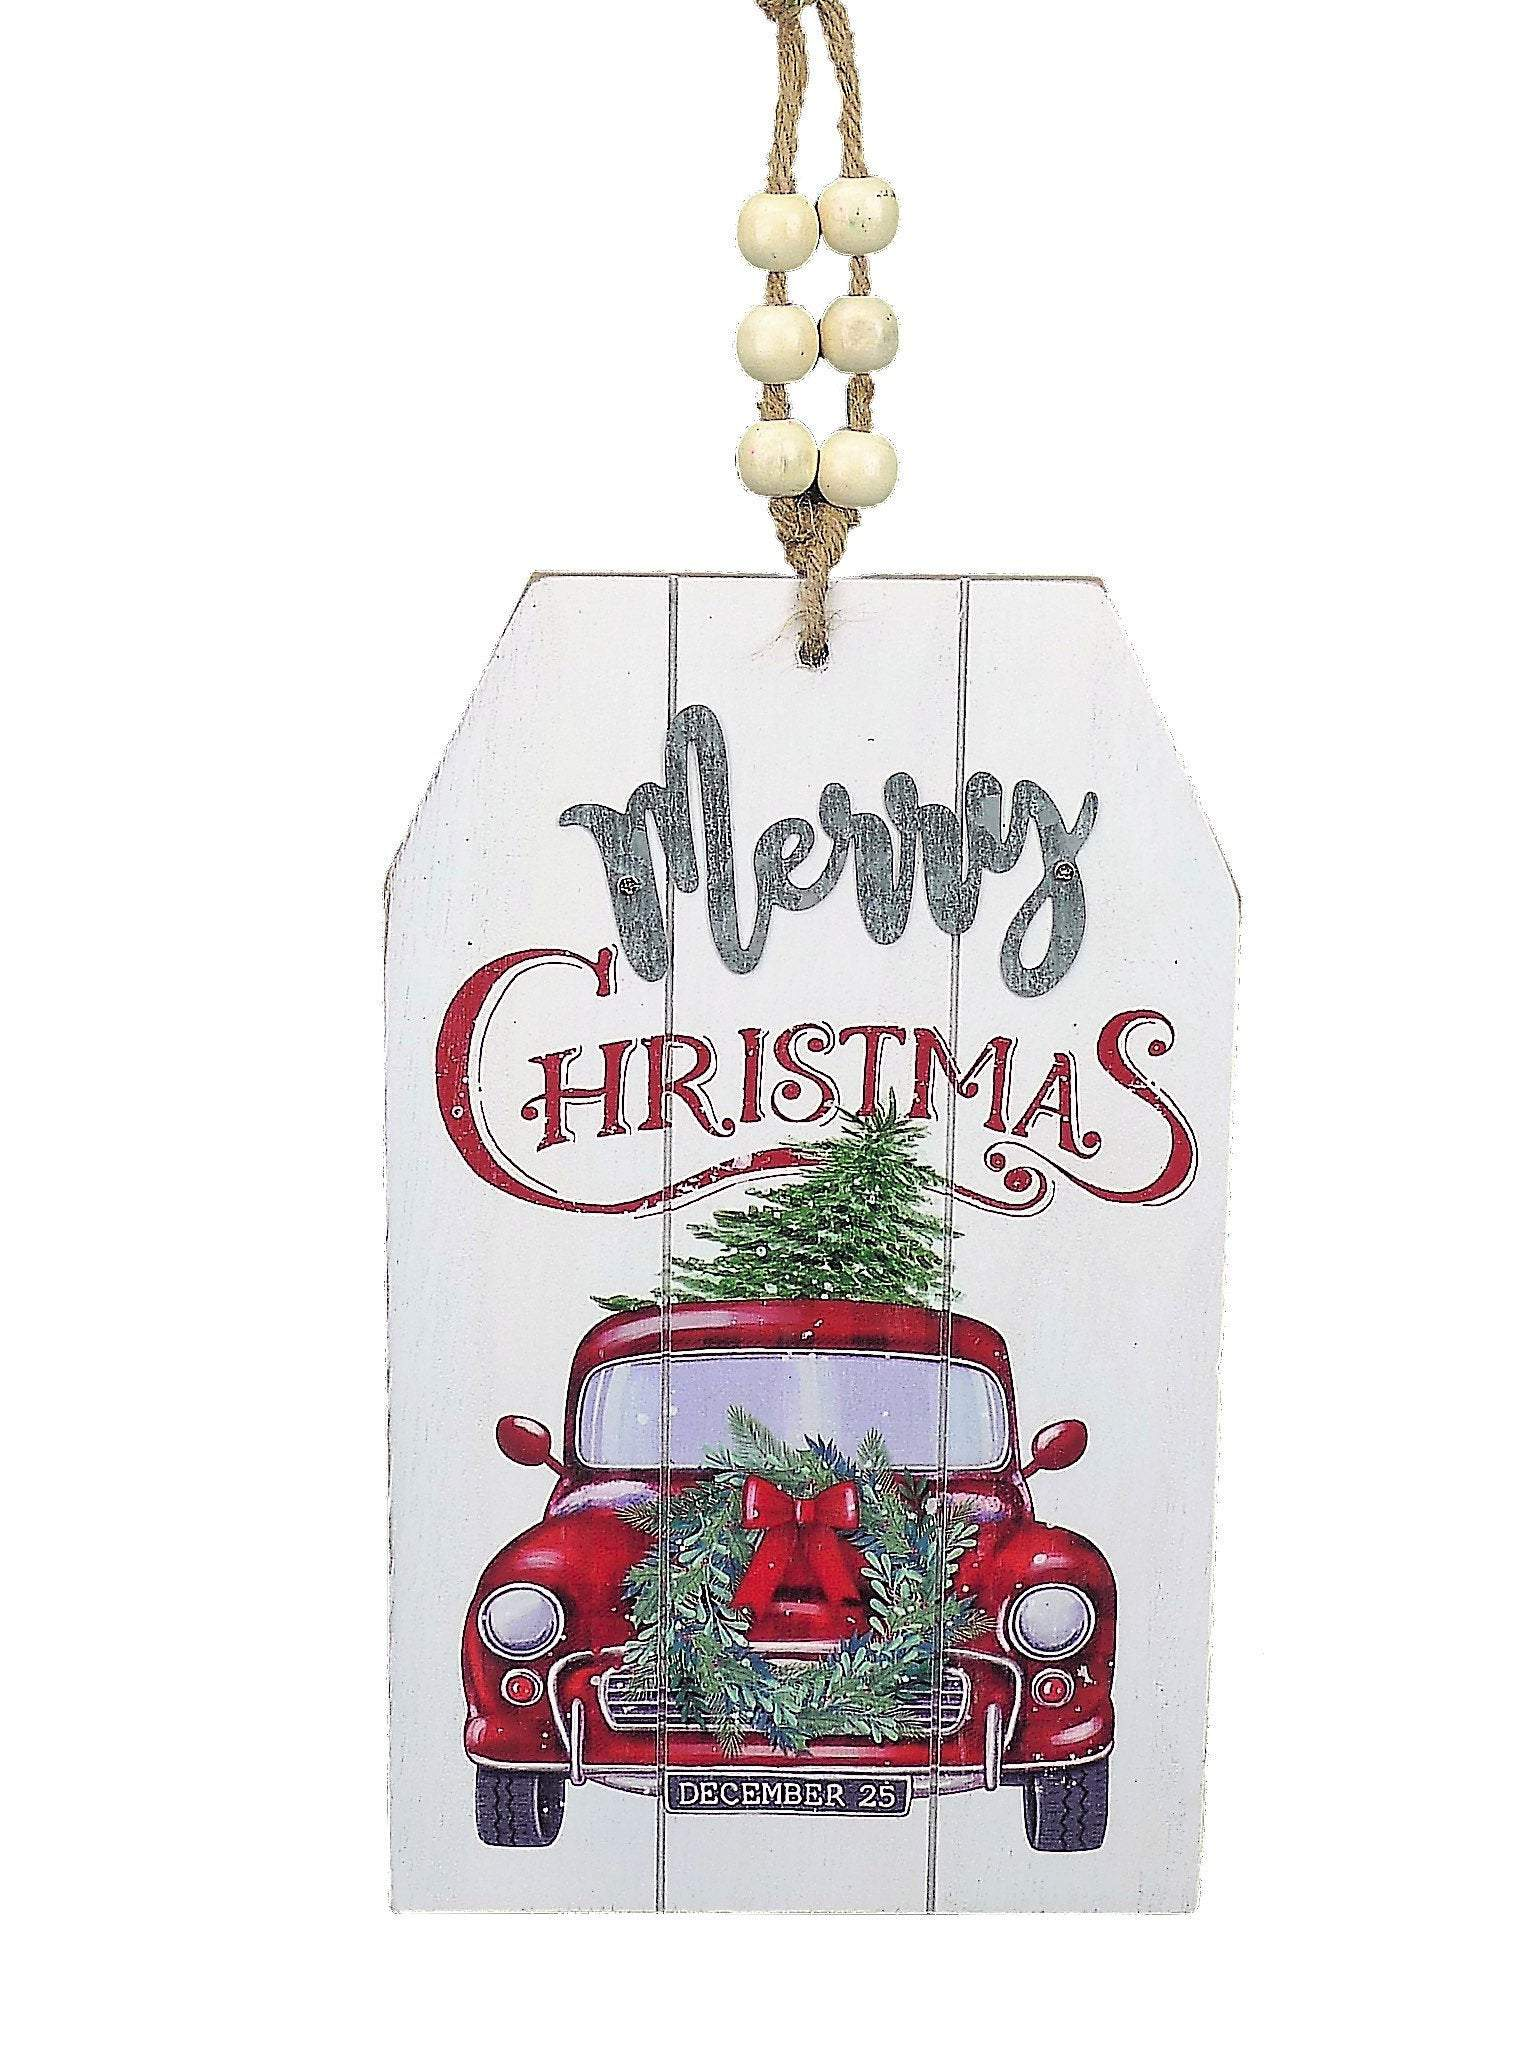 Christmas signs, red truck sign, christmas sign, signs for wreaths, Wreath sign, wreath attachments, old fashioned car sogn, christmas decor